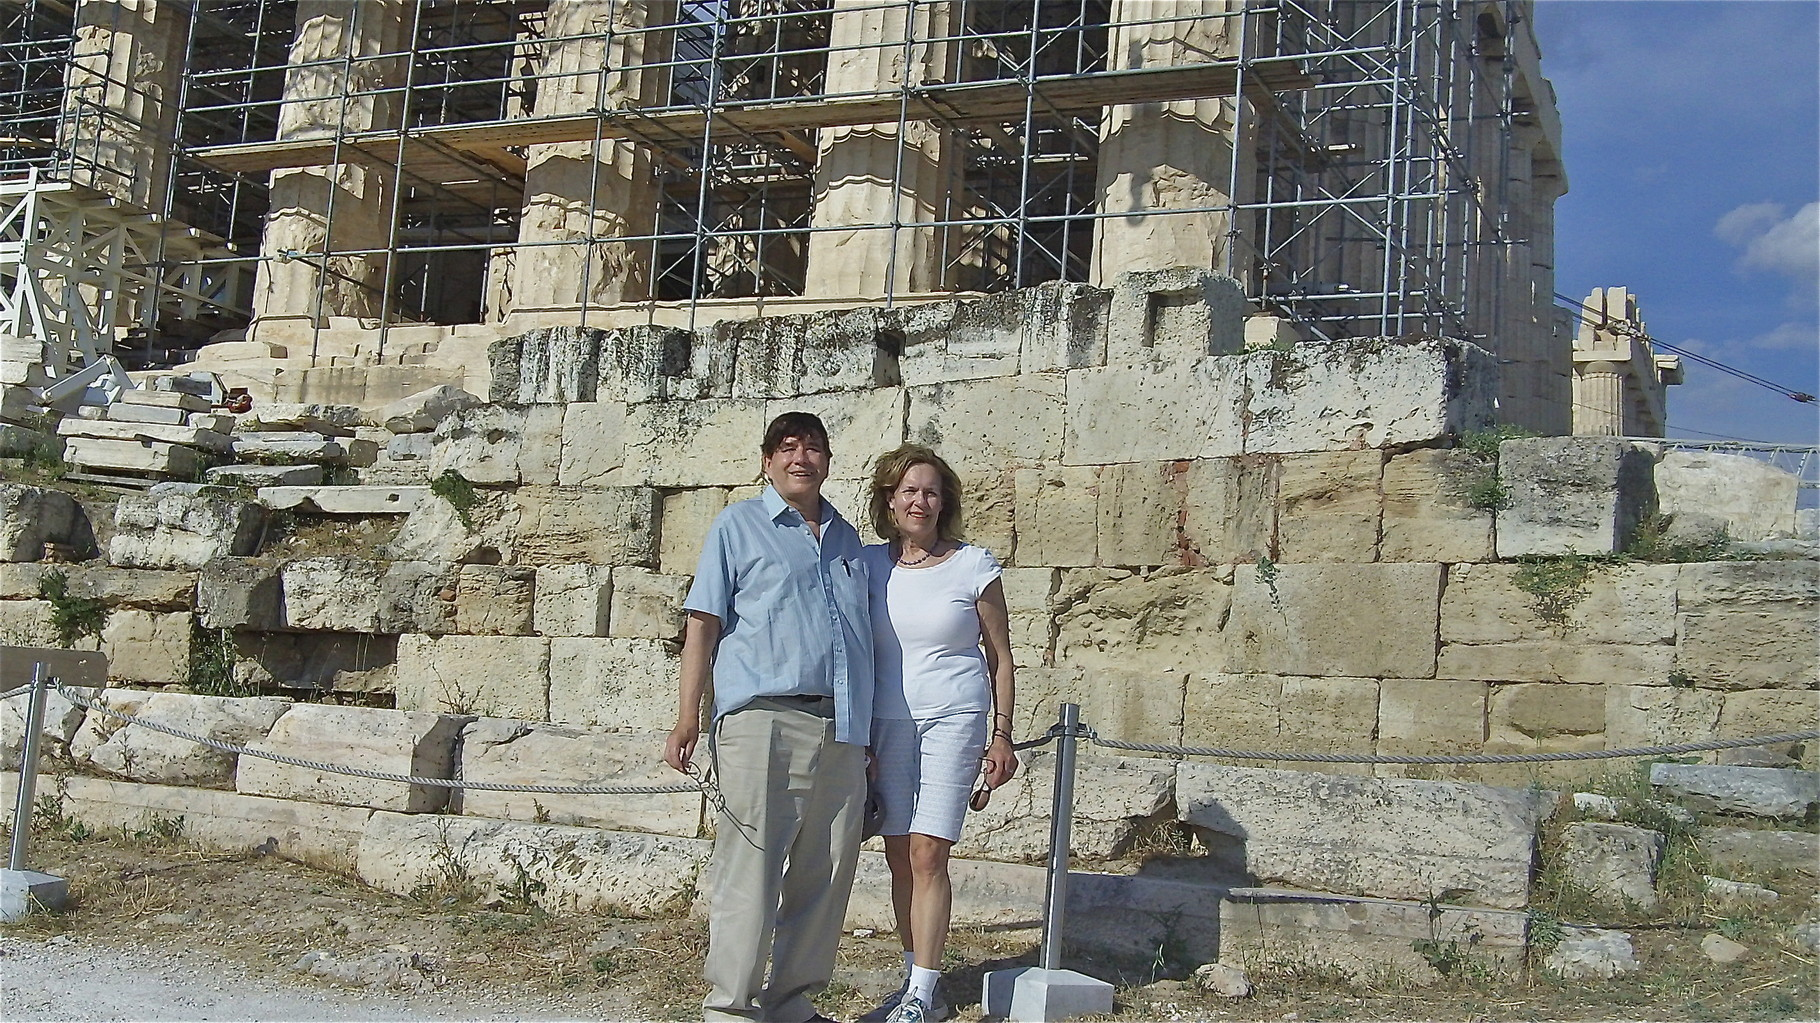 John & Lorraine at the Parthenon, center of Western thought and civilization !